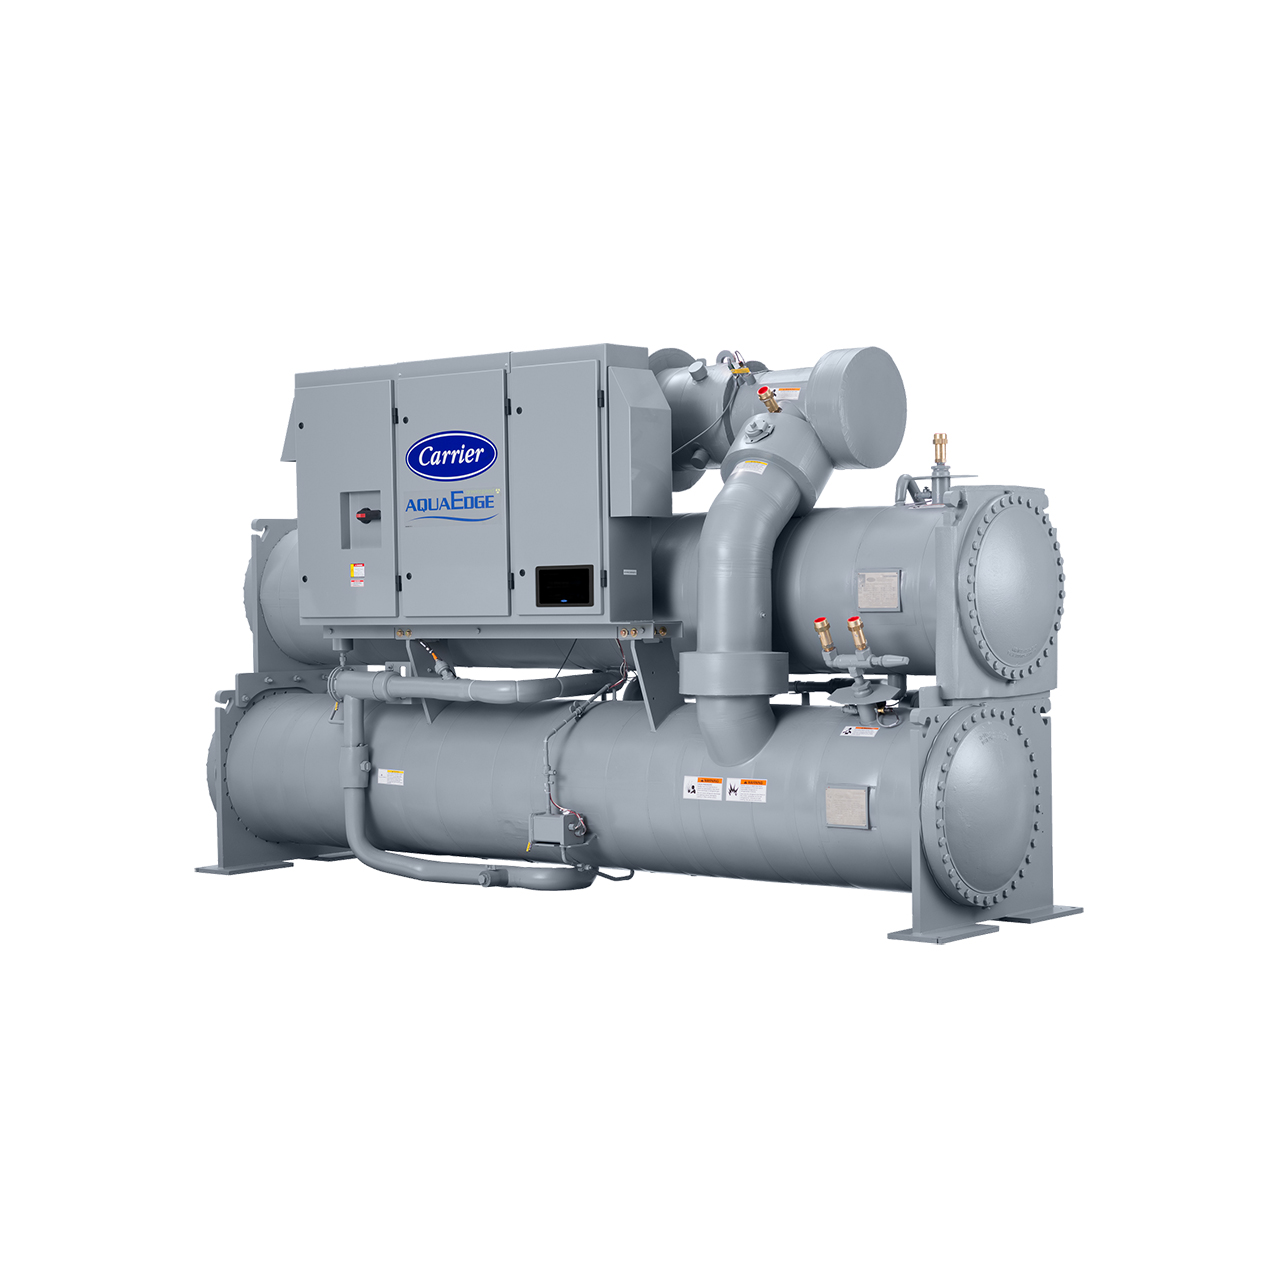 The 23XRV chiller is the world's first integrated variable-speed, water cooled, screw chiller.